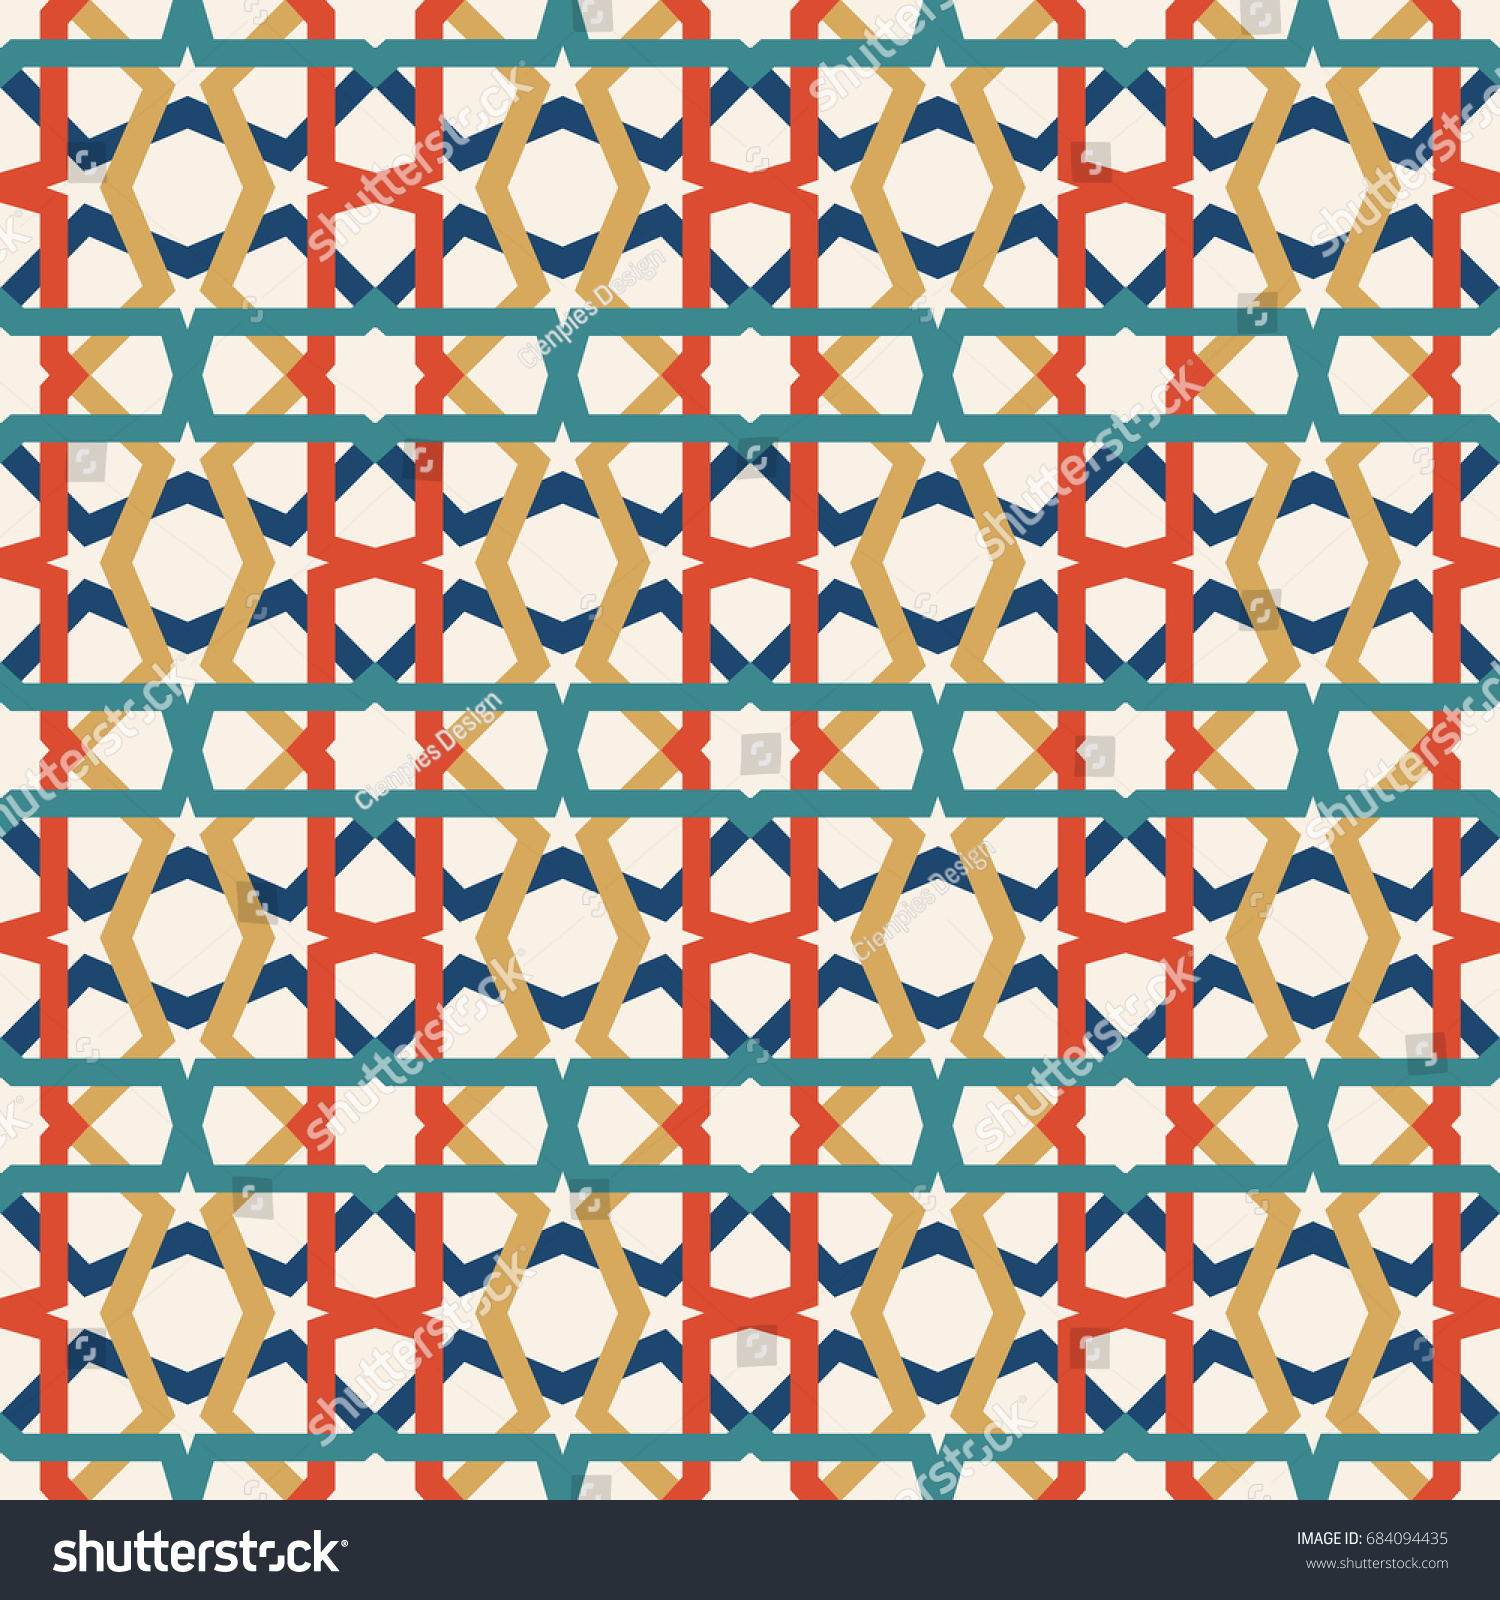 Classic Ceramic Mosaic Tile Seamless Pattern Stock Vector 684094435 ...